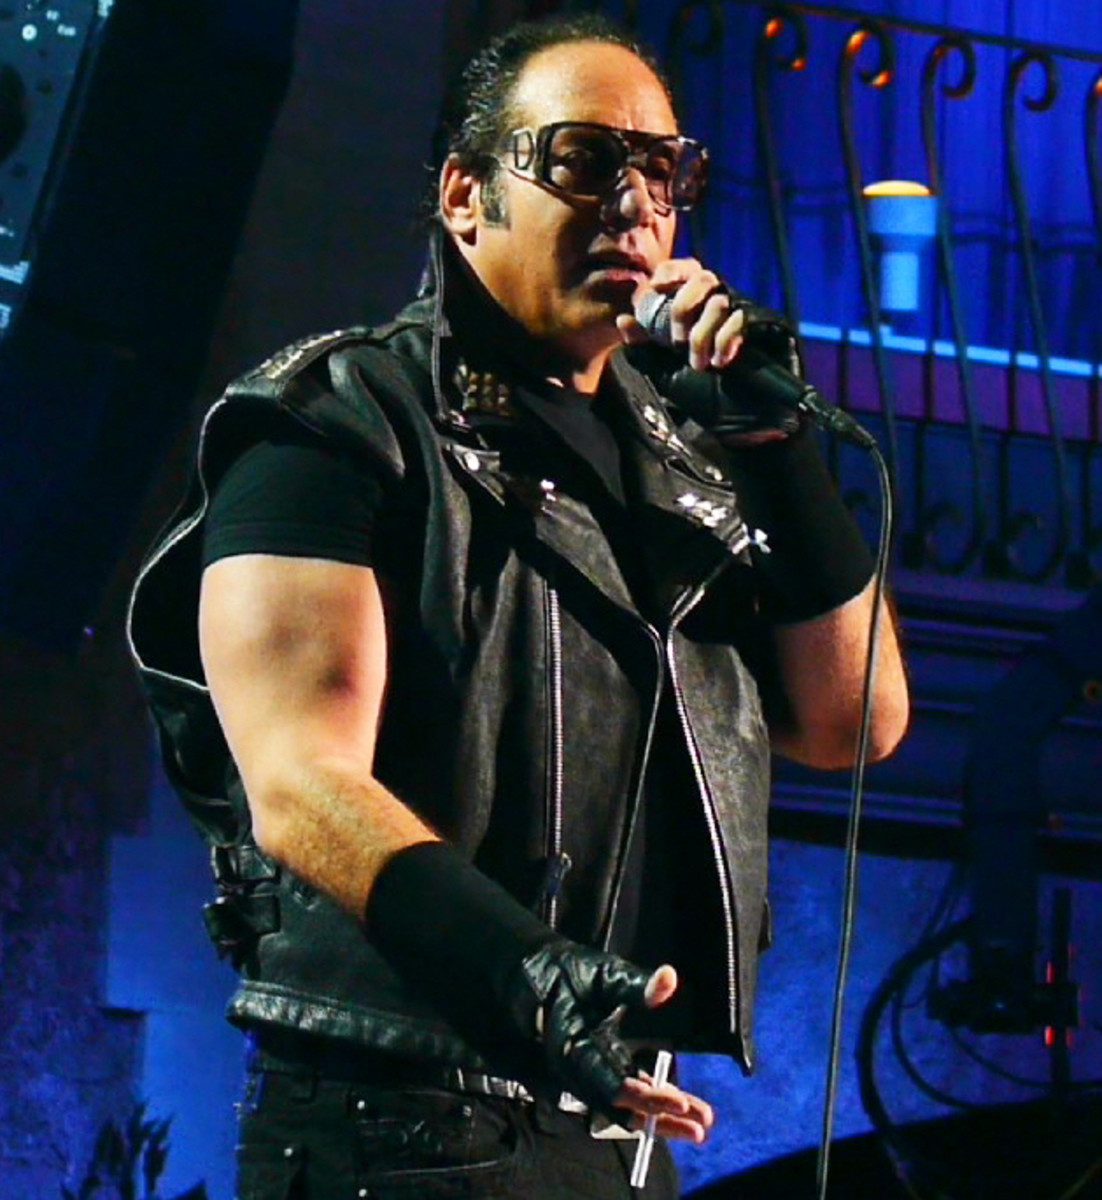 Andrew Dice Clay in 2012 Photo By LOL Comedy from Hollywood via Wikimedia Commons